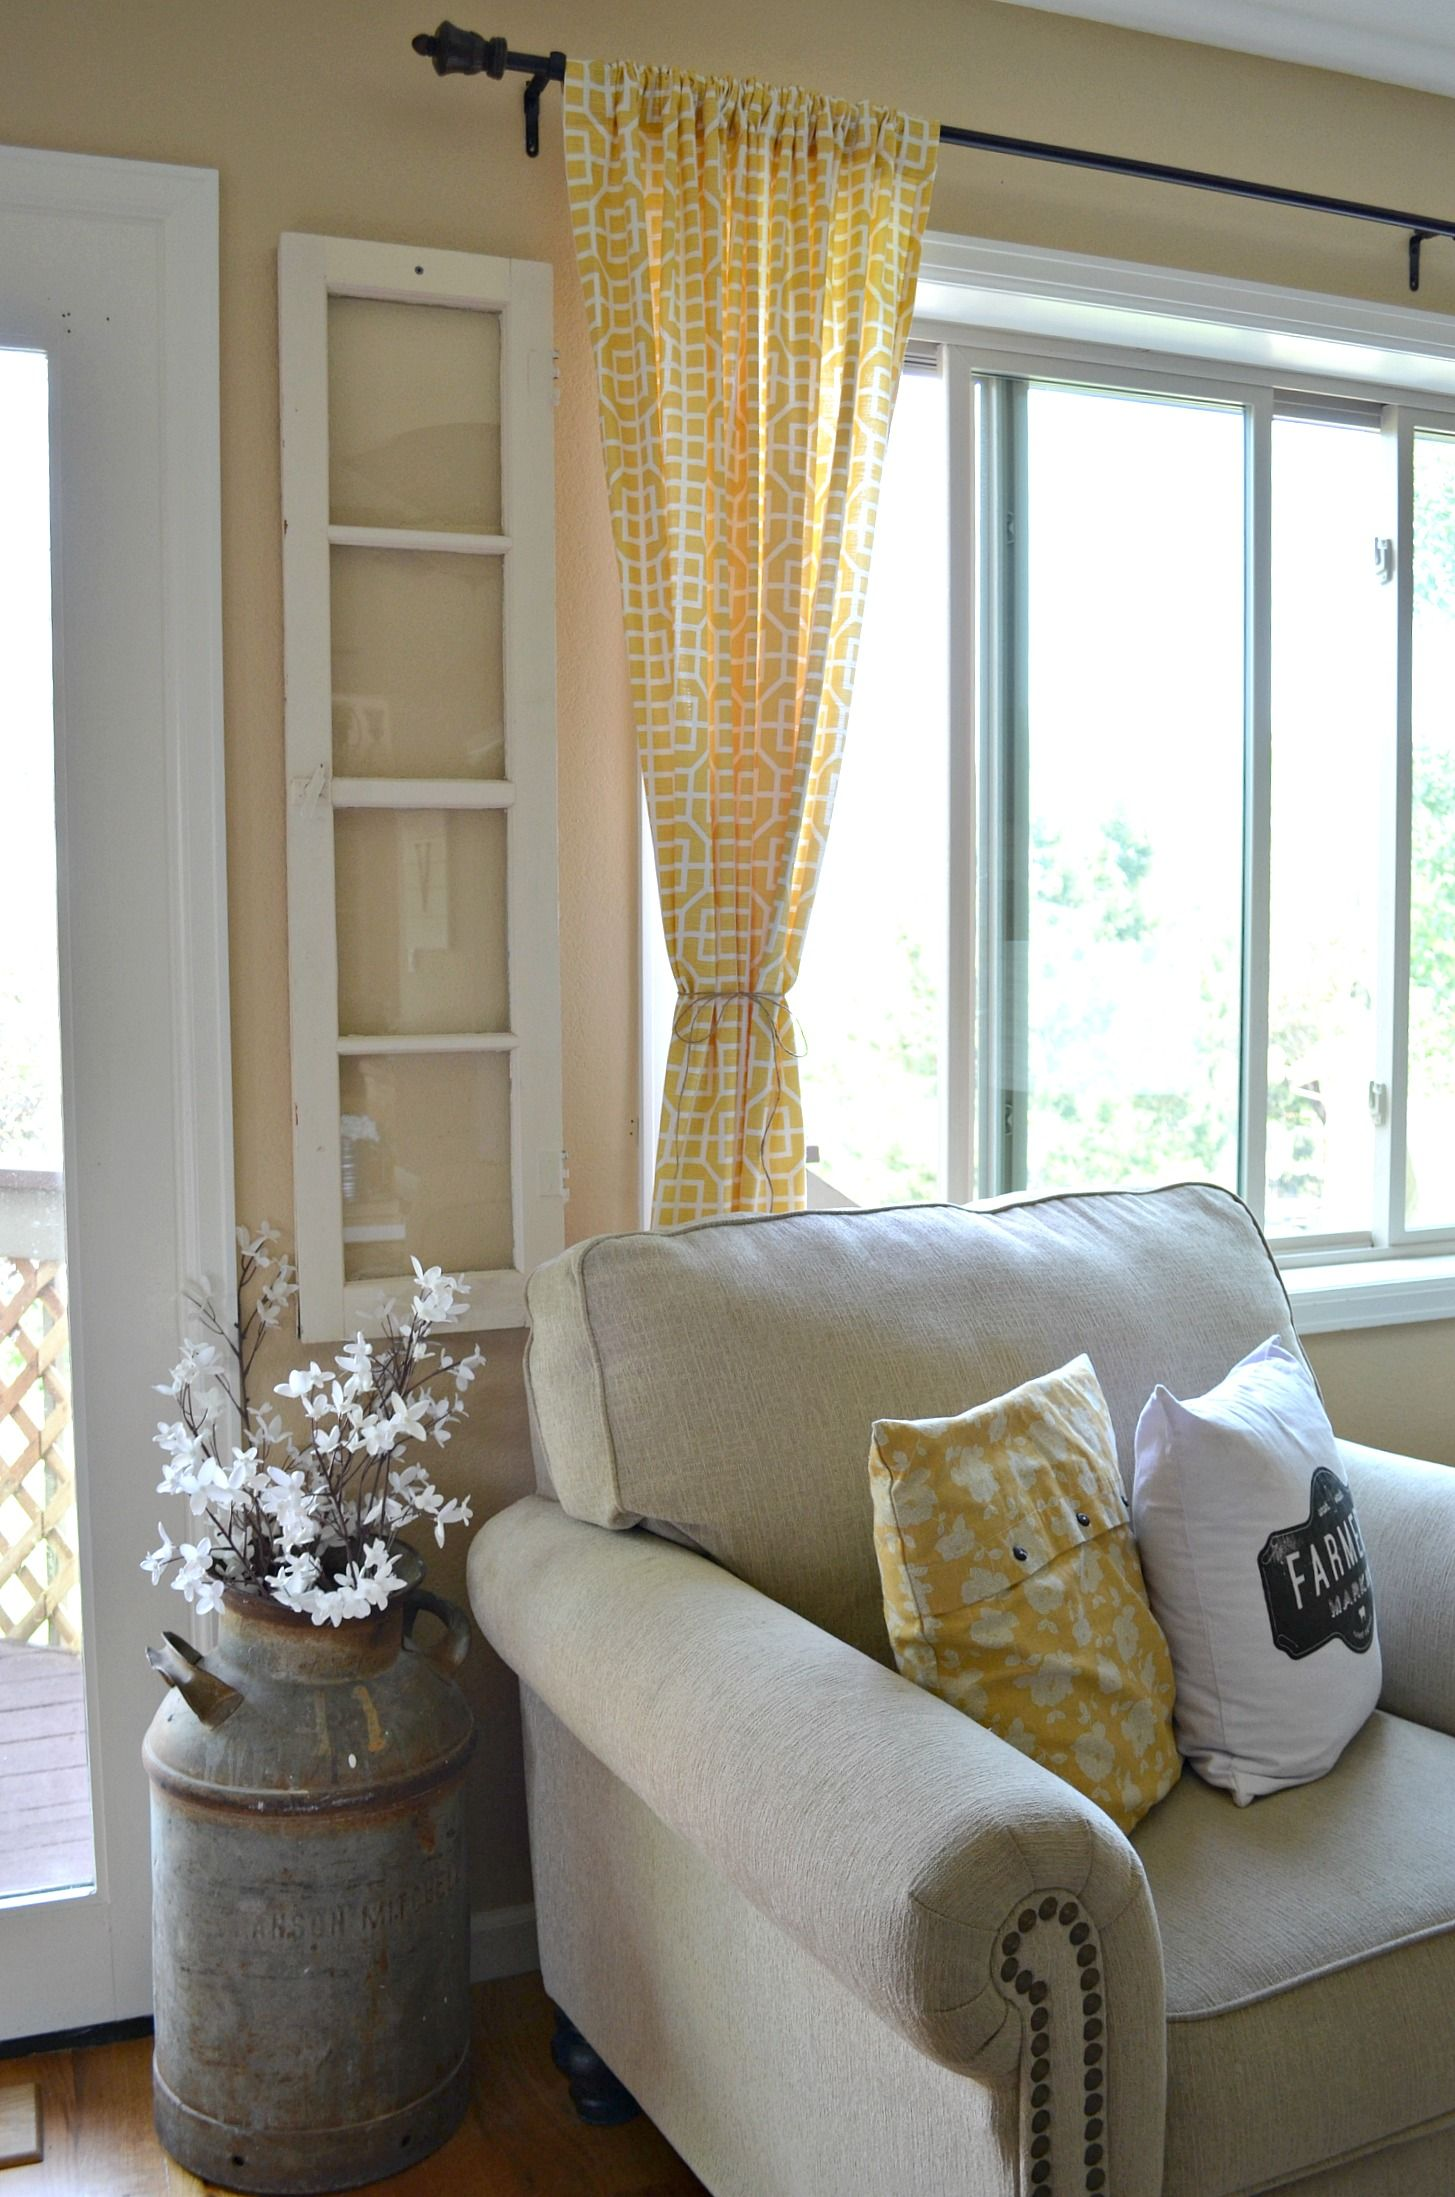 4 Ways To Decorate With Old Windows Farmhouse Decor Living